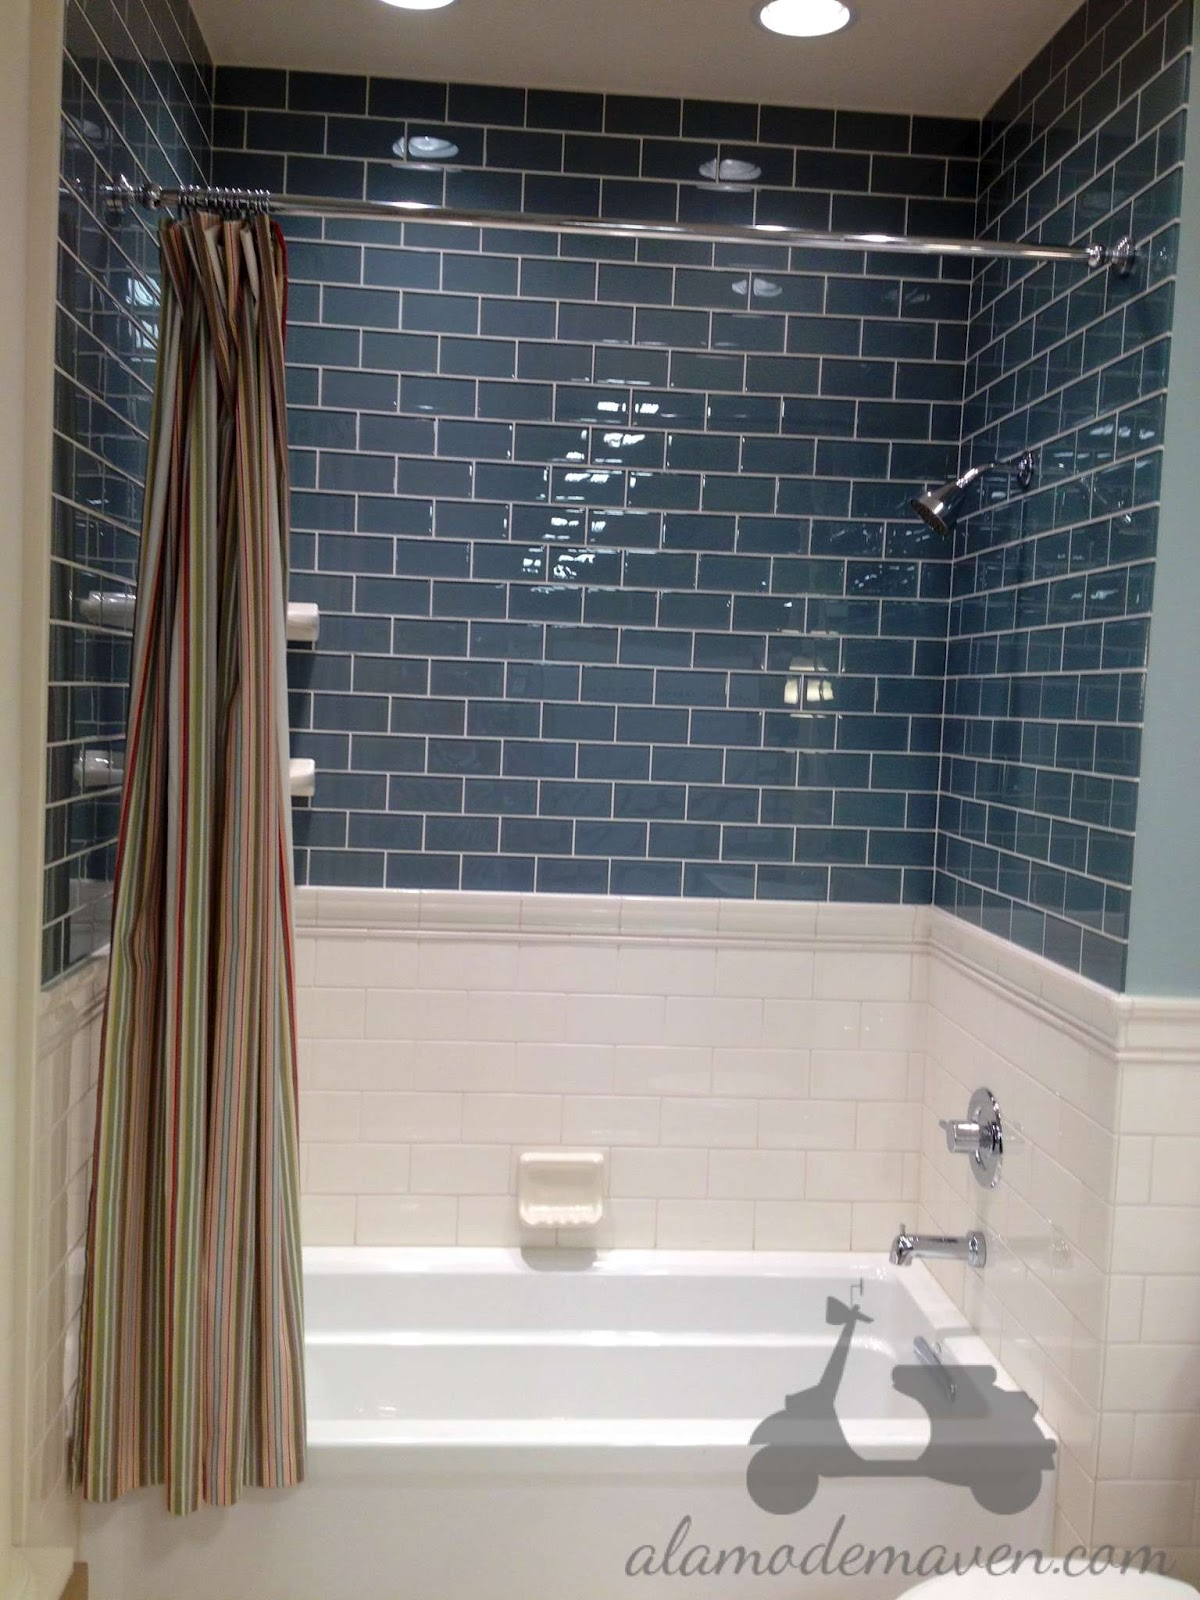 Bathroom idea shower tile bathroom shower bathroom 2 bp blogspot com - Google Image Result For Http 4 Bp Blogspot Com 8j9rtfm1z3y Ud4fltgagki Aaaaaaaaeqs Sjnk3 To61g S1600 Blueglasssubwaytileswtmk0000 Jpg Pinterest White